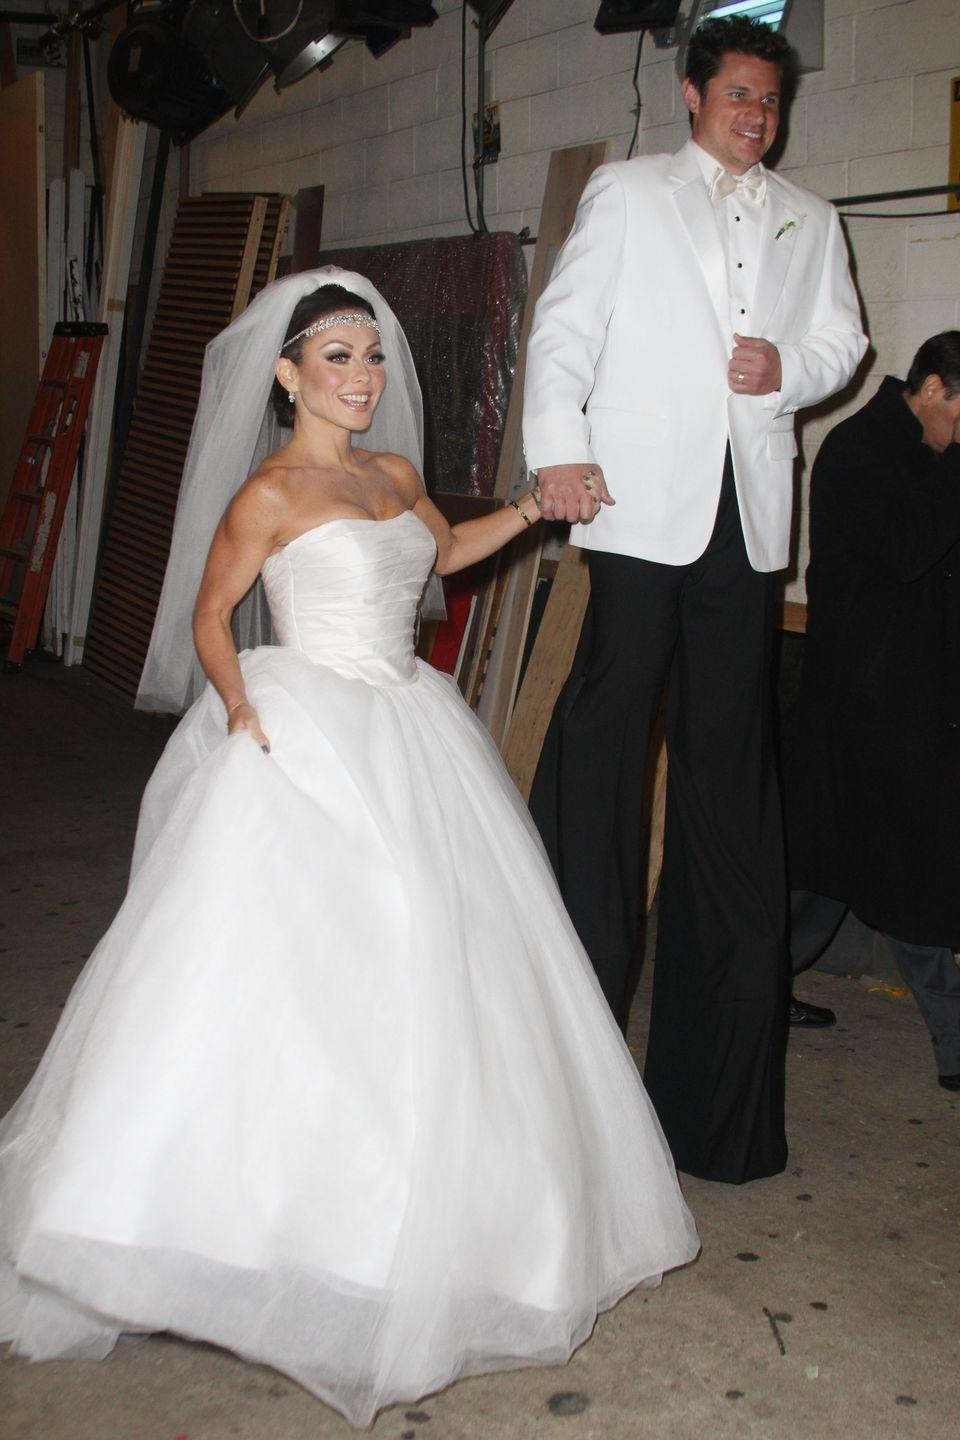 <p>TV host Kelly Ripa slayed in her Halloween costume as blushing bride Kim Kardashian with Nick Lachey as groom Kris Humphries towering above at the ABC TV studios in 2011.</p>